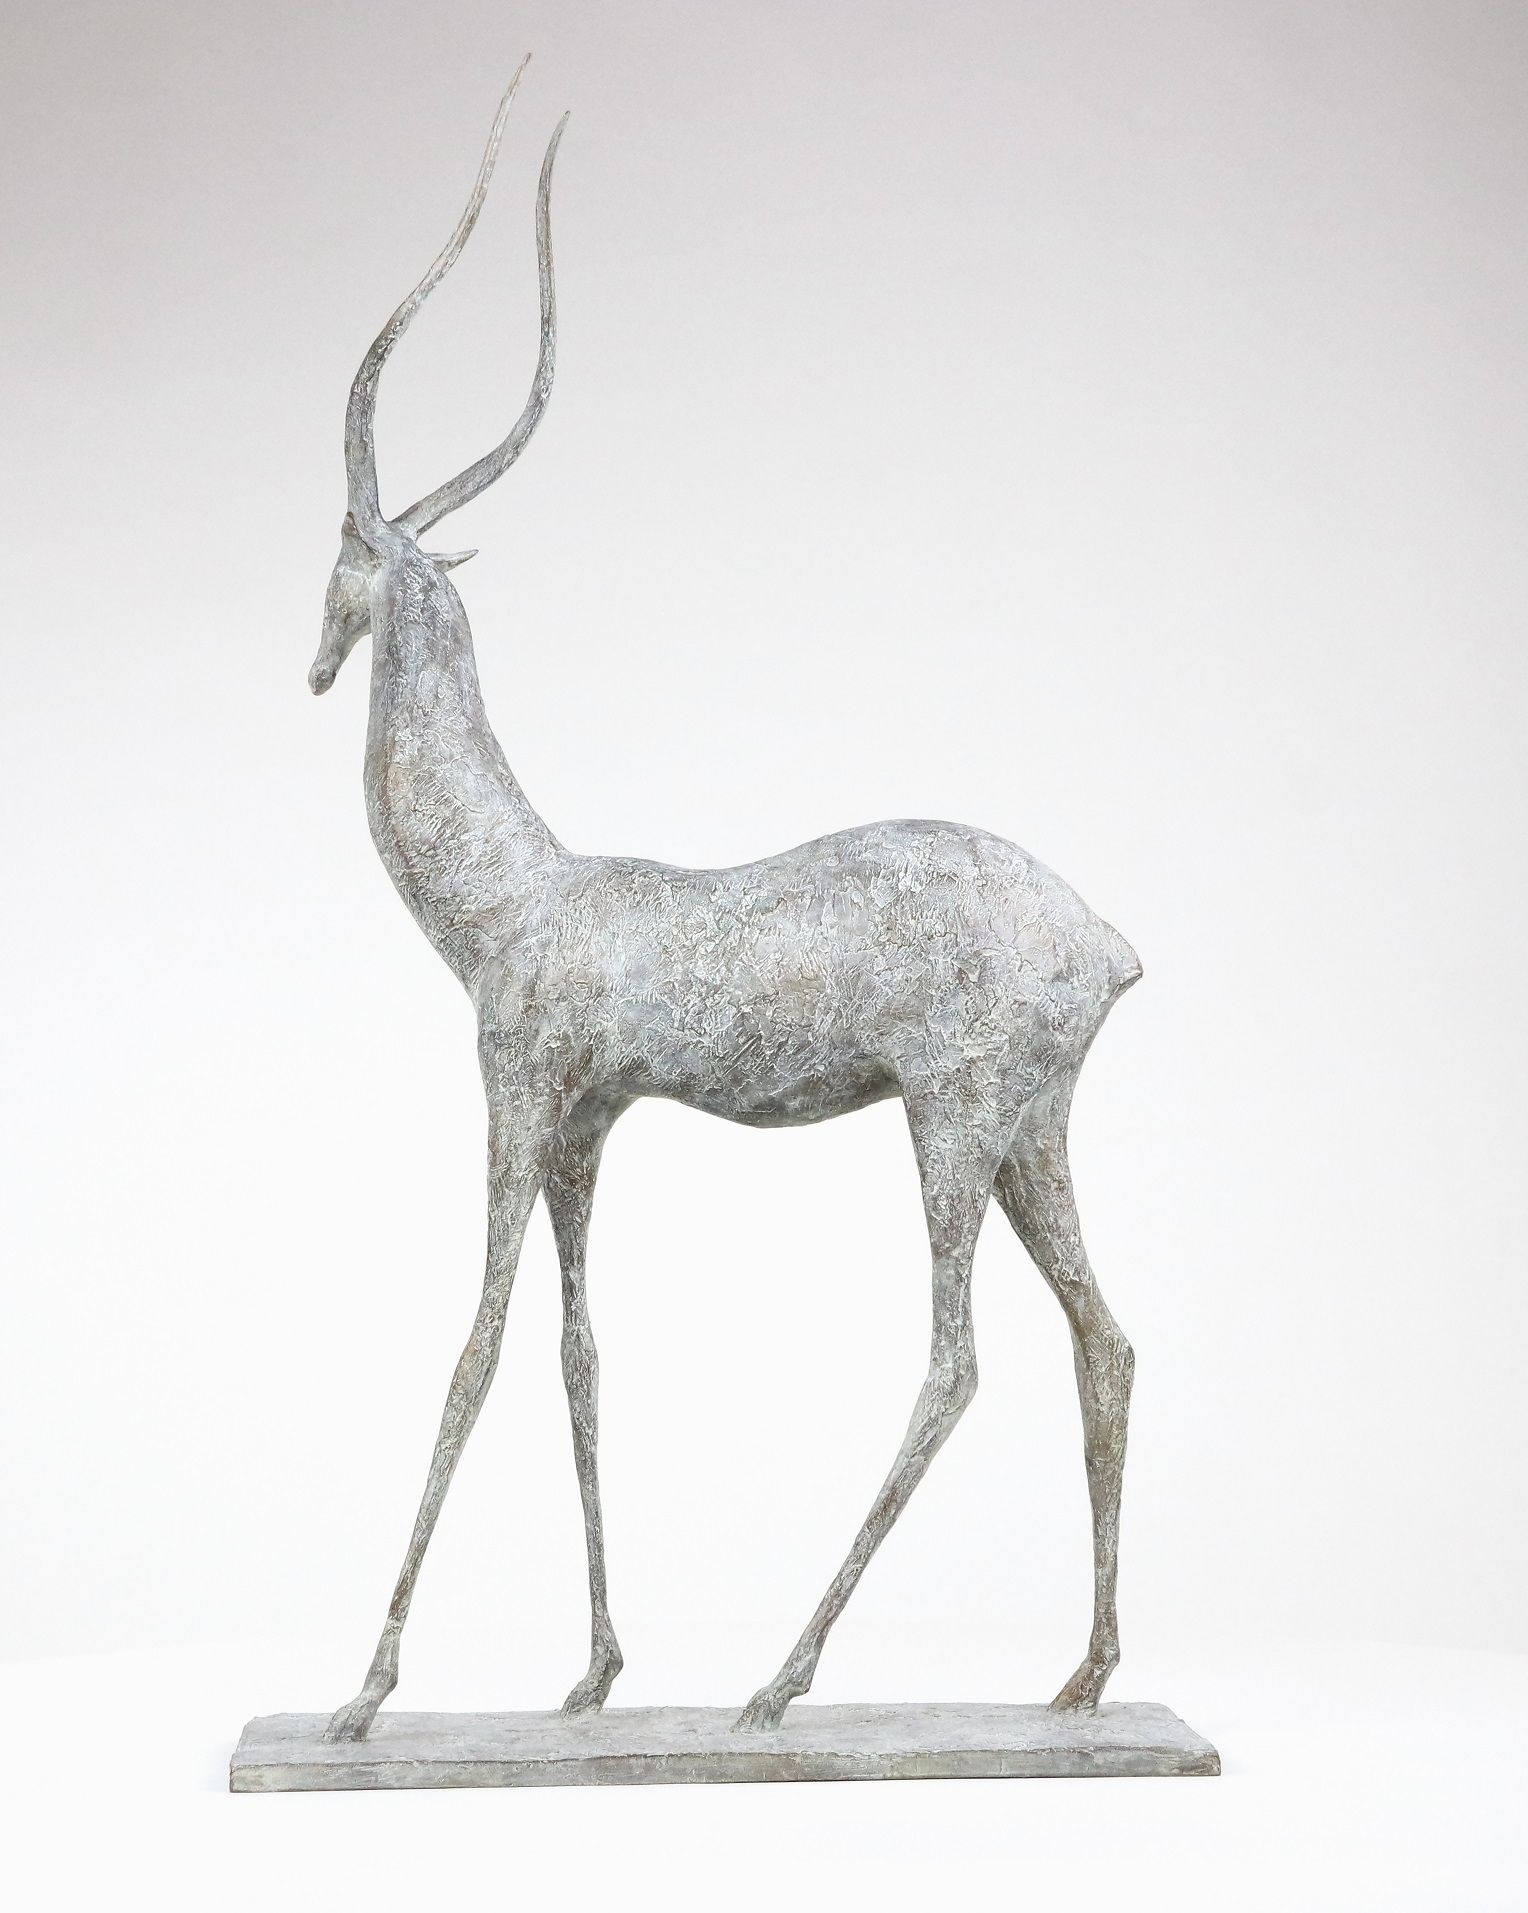 Gazelle I, Pierre Yermia,Sculpture contemporaine, detail 1